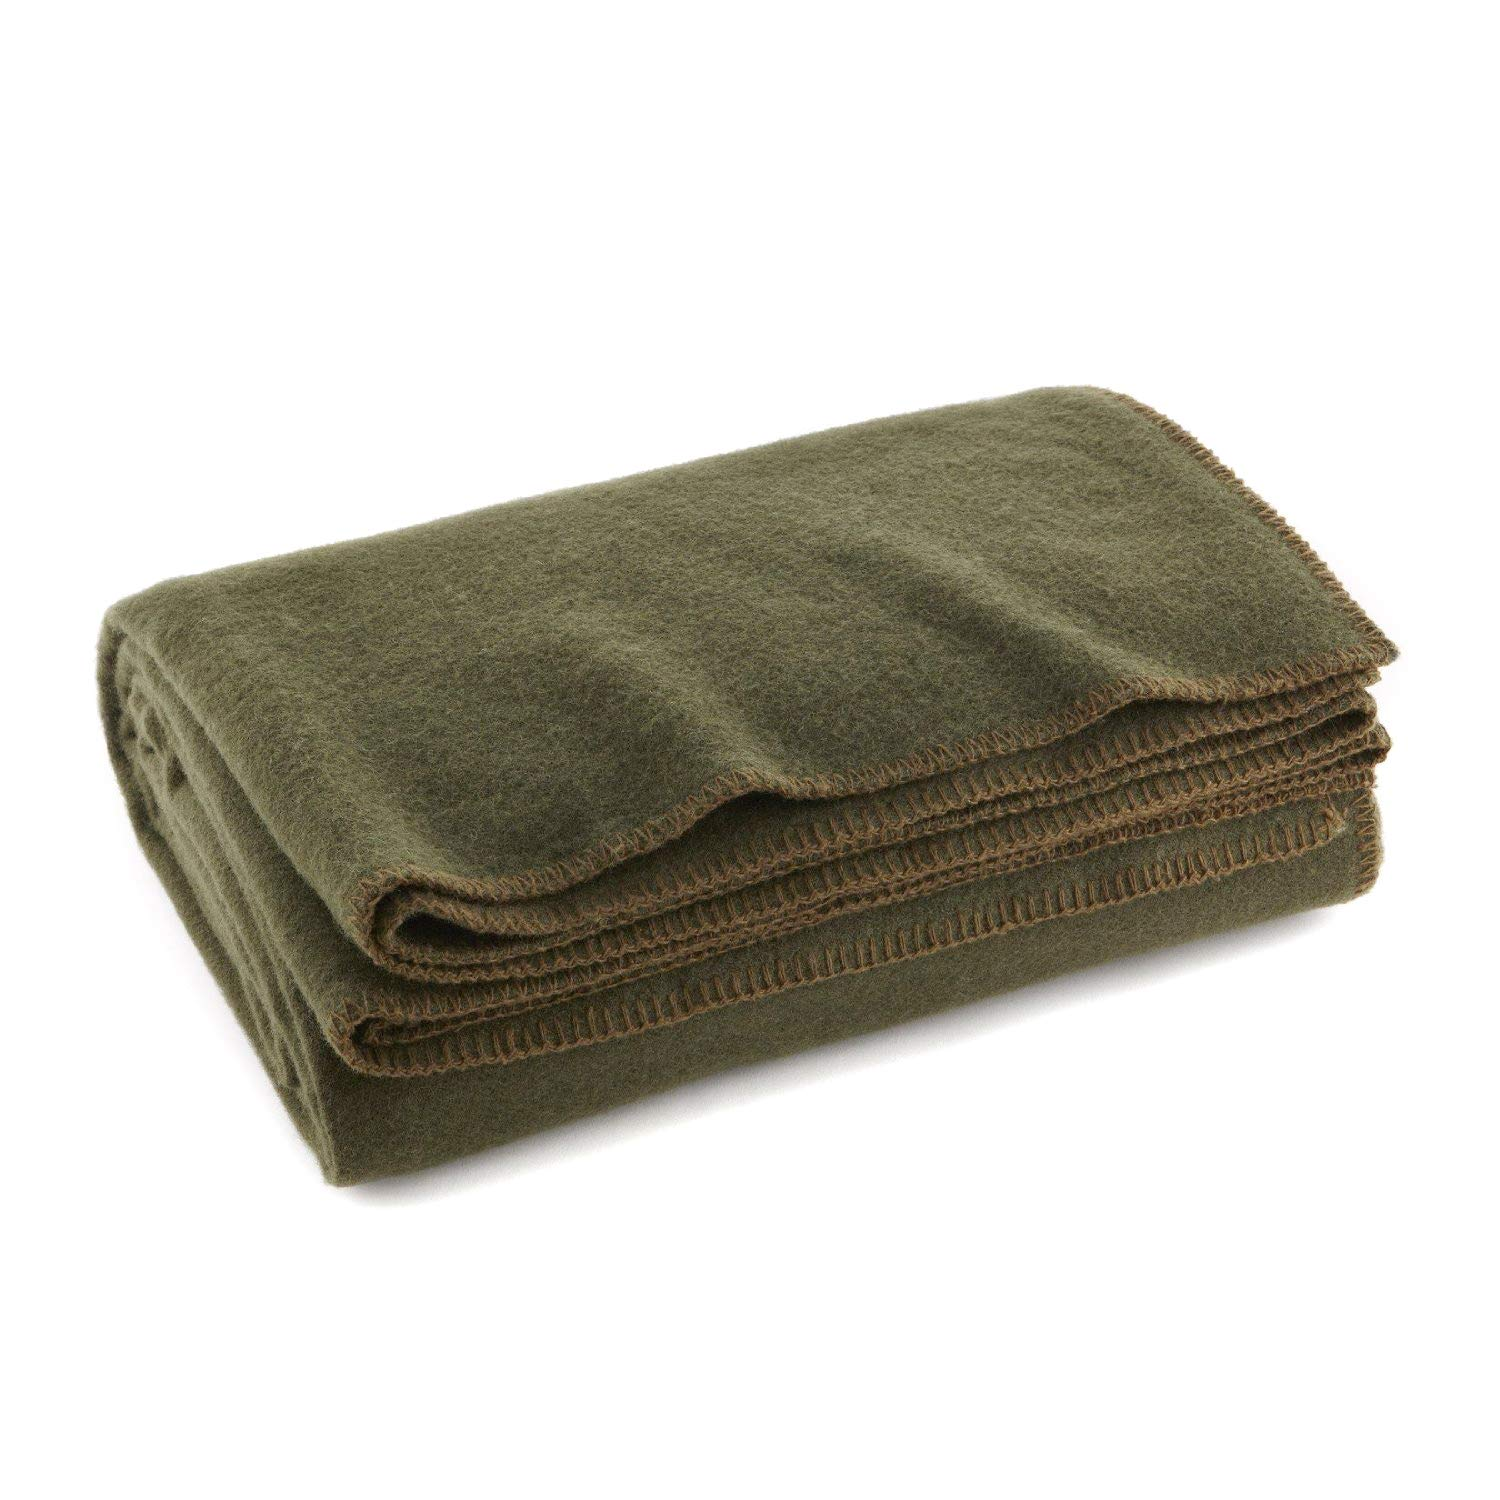 """Ever Ready First Aid Olive Drab Green Warm Wool Fire Retardent Blanket, 66"""" x 90"""" (80% Wool)-US Military"""